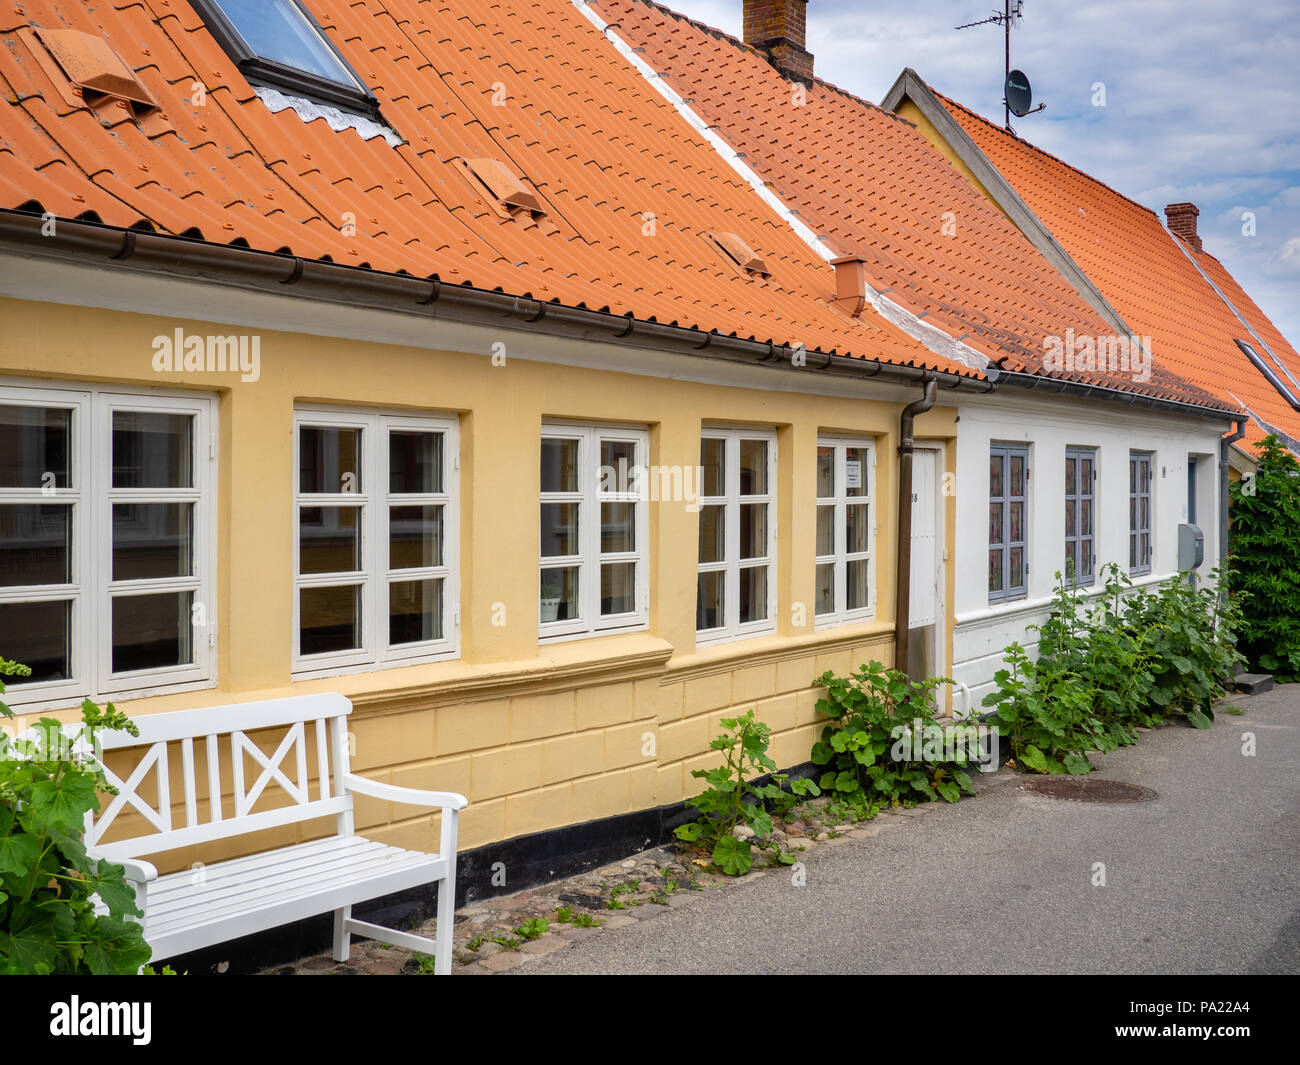 Cottages in the maritime town of Marstal, Aero Island, Denmark. - Stock Image